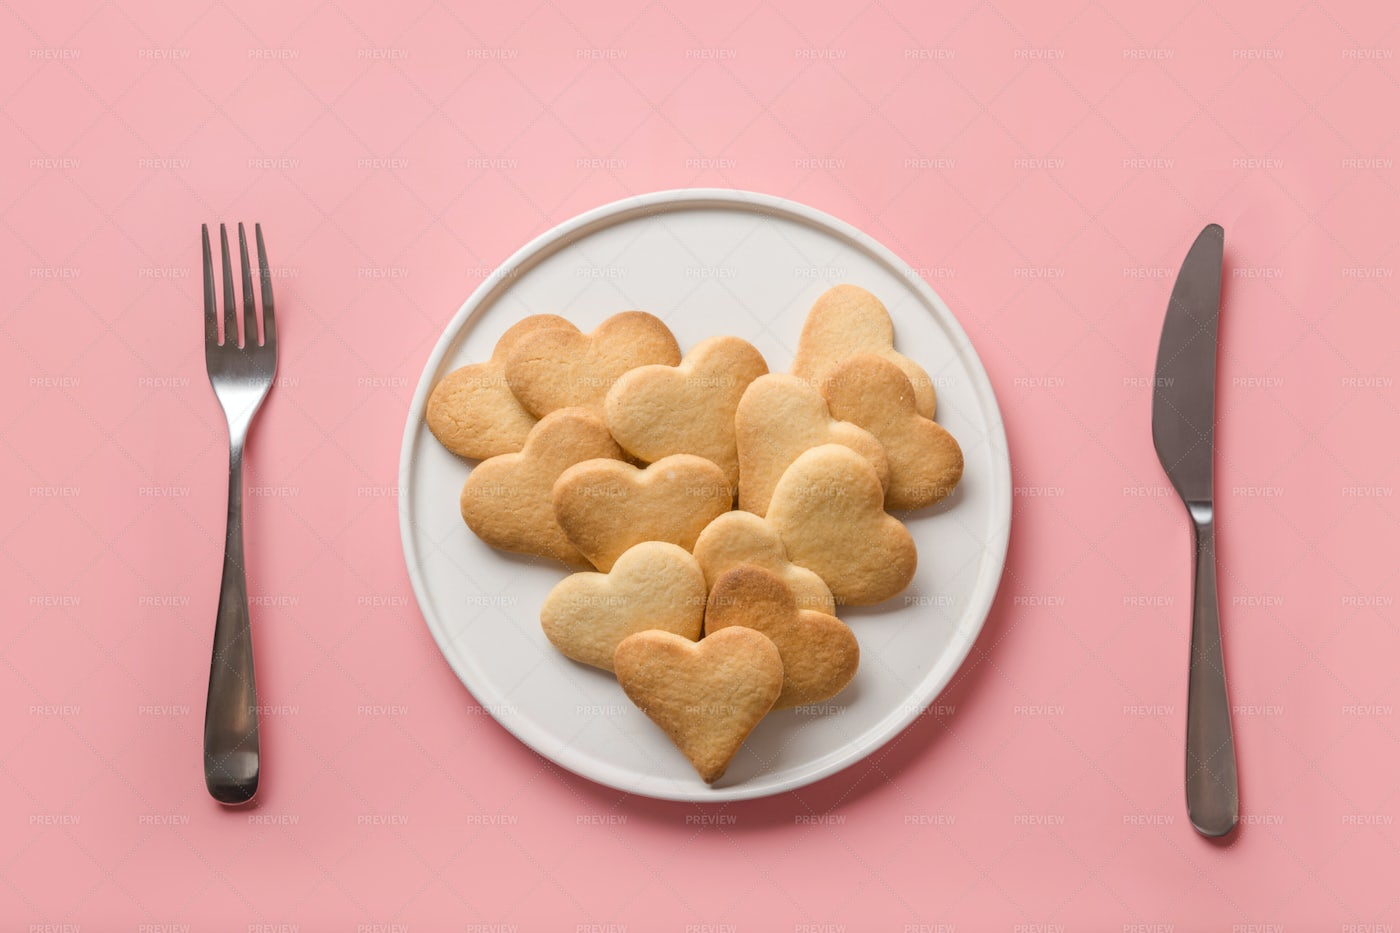 Cookies In A Plate: Stock Photos